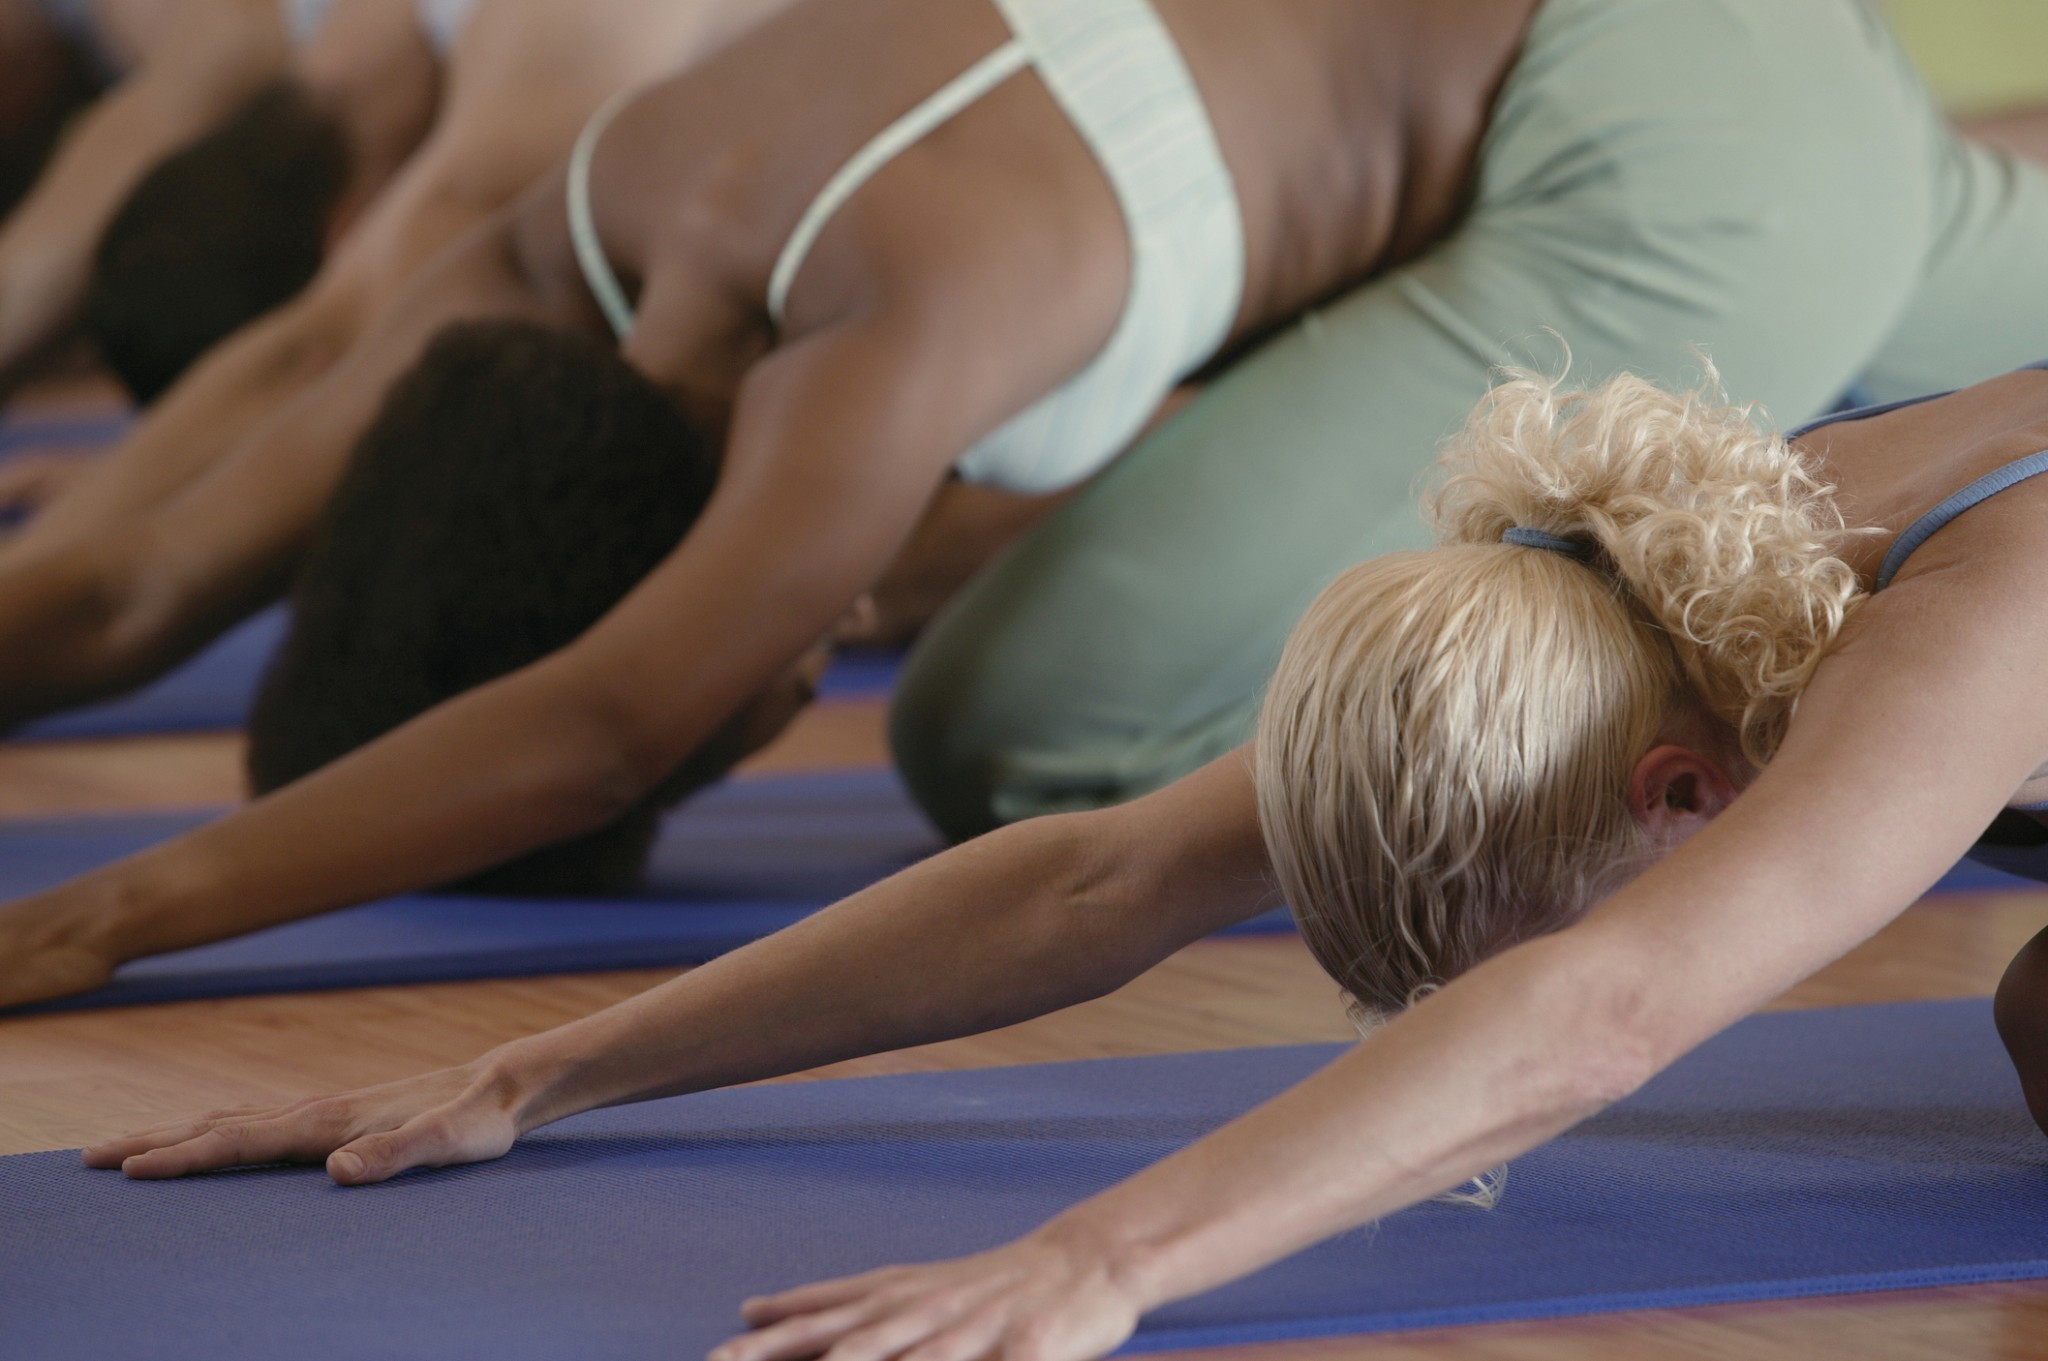 Study Finds Yoga Can Help Back Pain, But Keep It Gentle, With These Poses